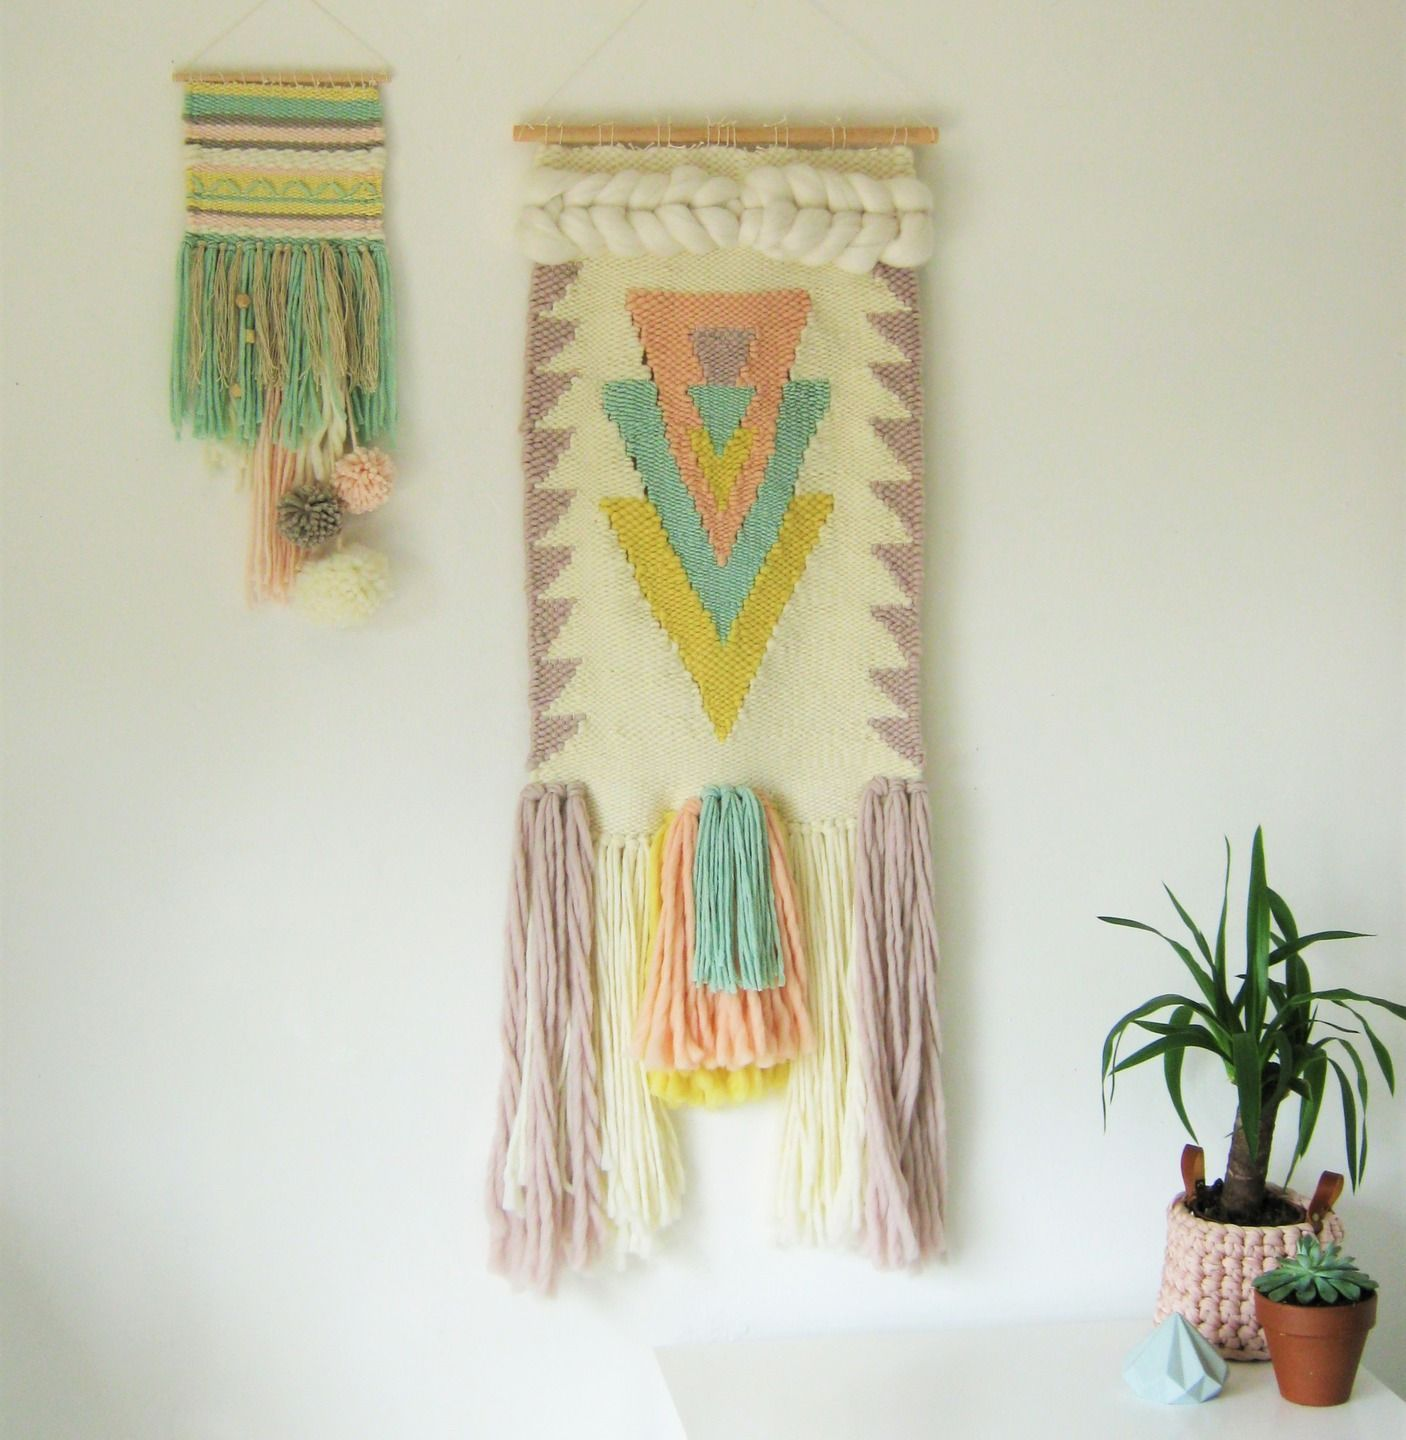 XXL TISSAGE MURAL pastel triangles totem suspension murale wall